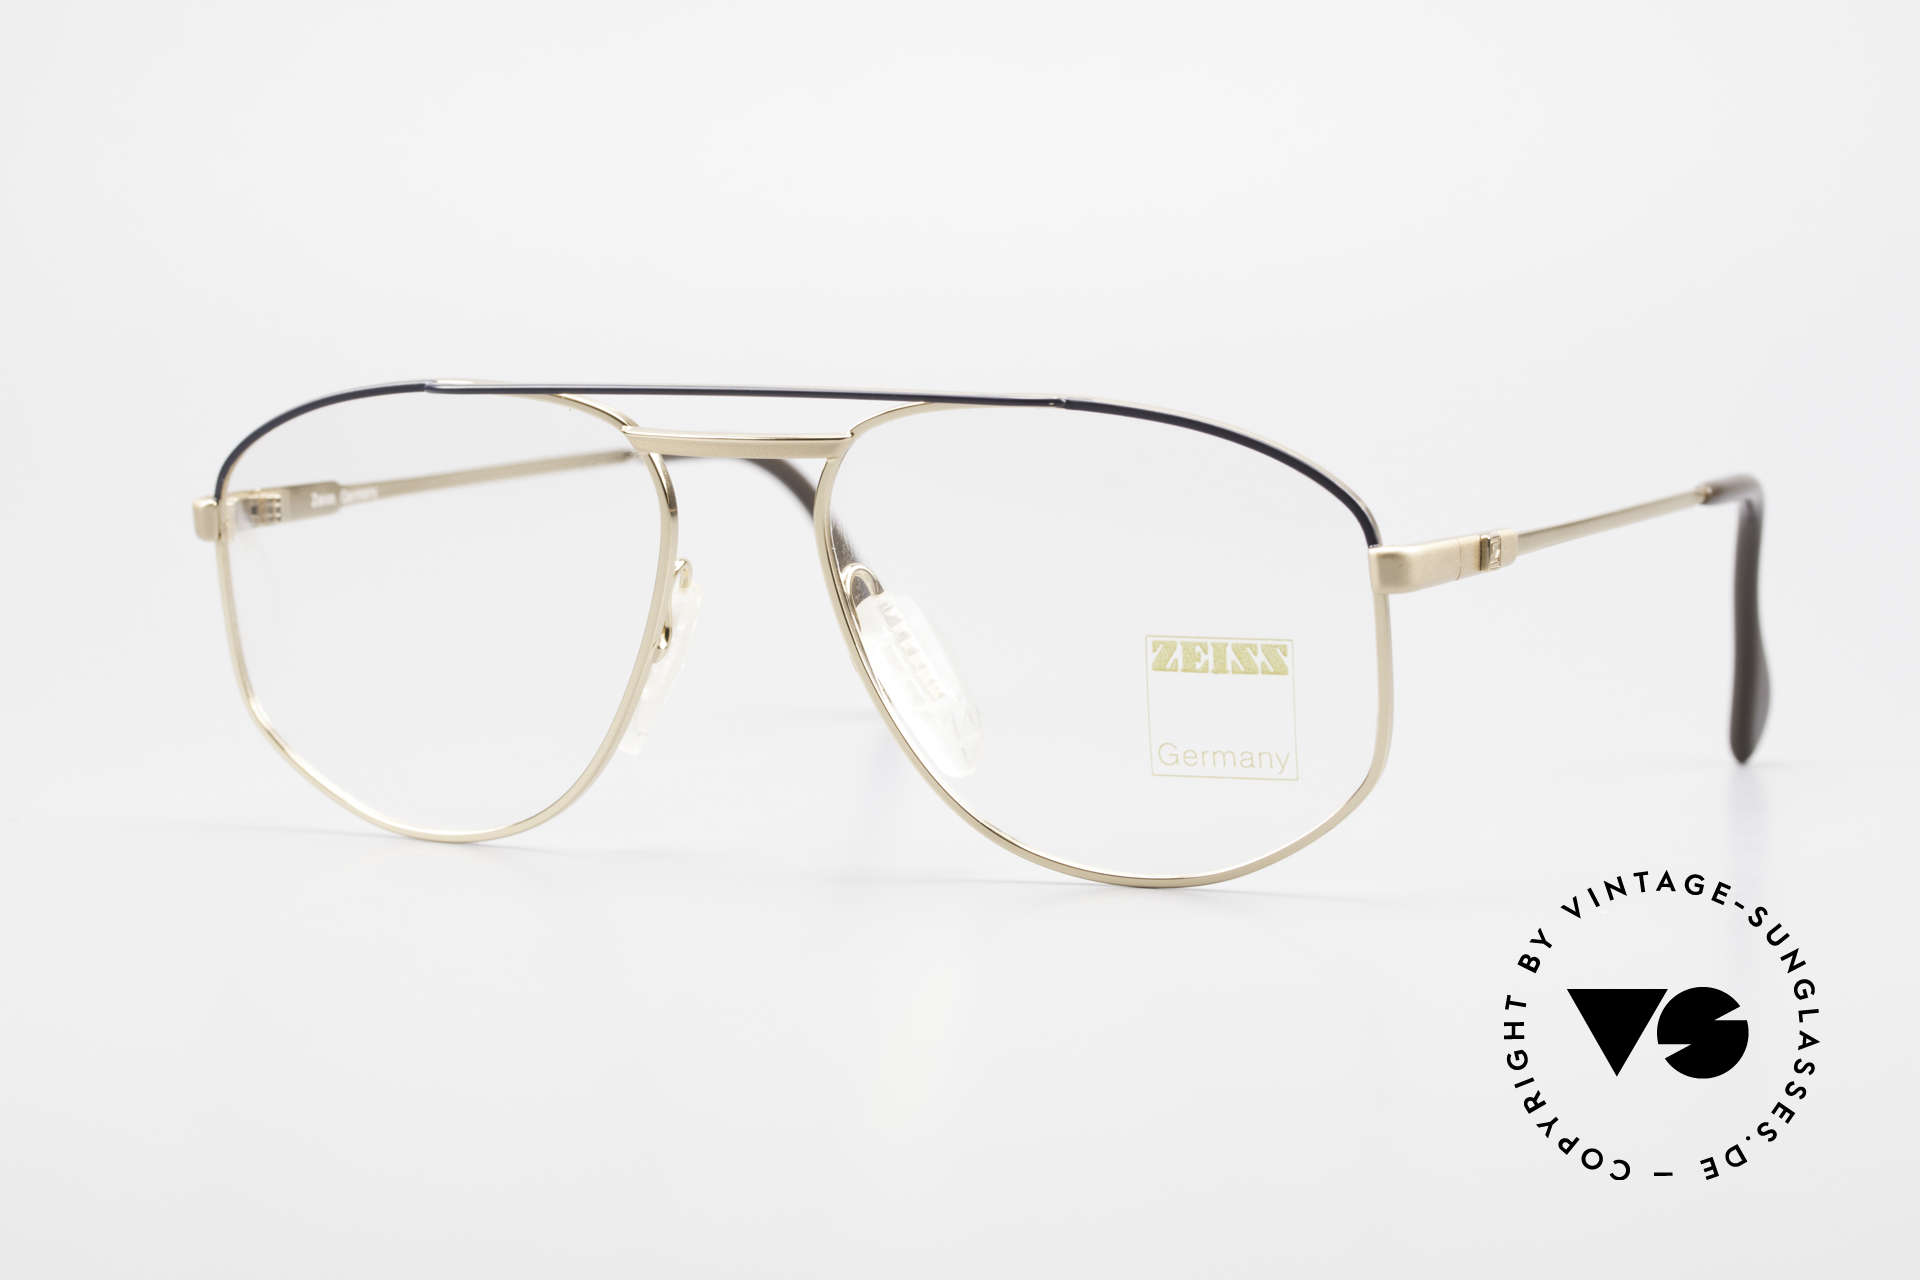 Zeiss 5923 Rare Old 90's Eyeglass-Frame, sturdy vintage eyeglass-frame by Zeiss from app. 1990, Made for Men